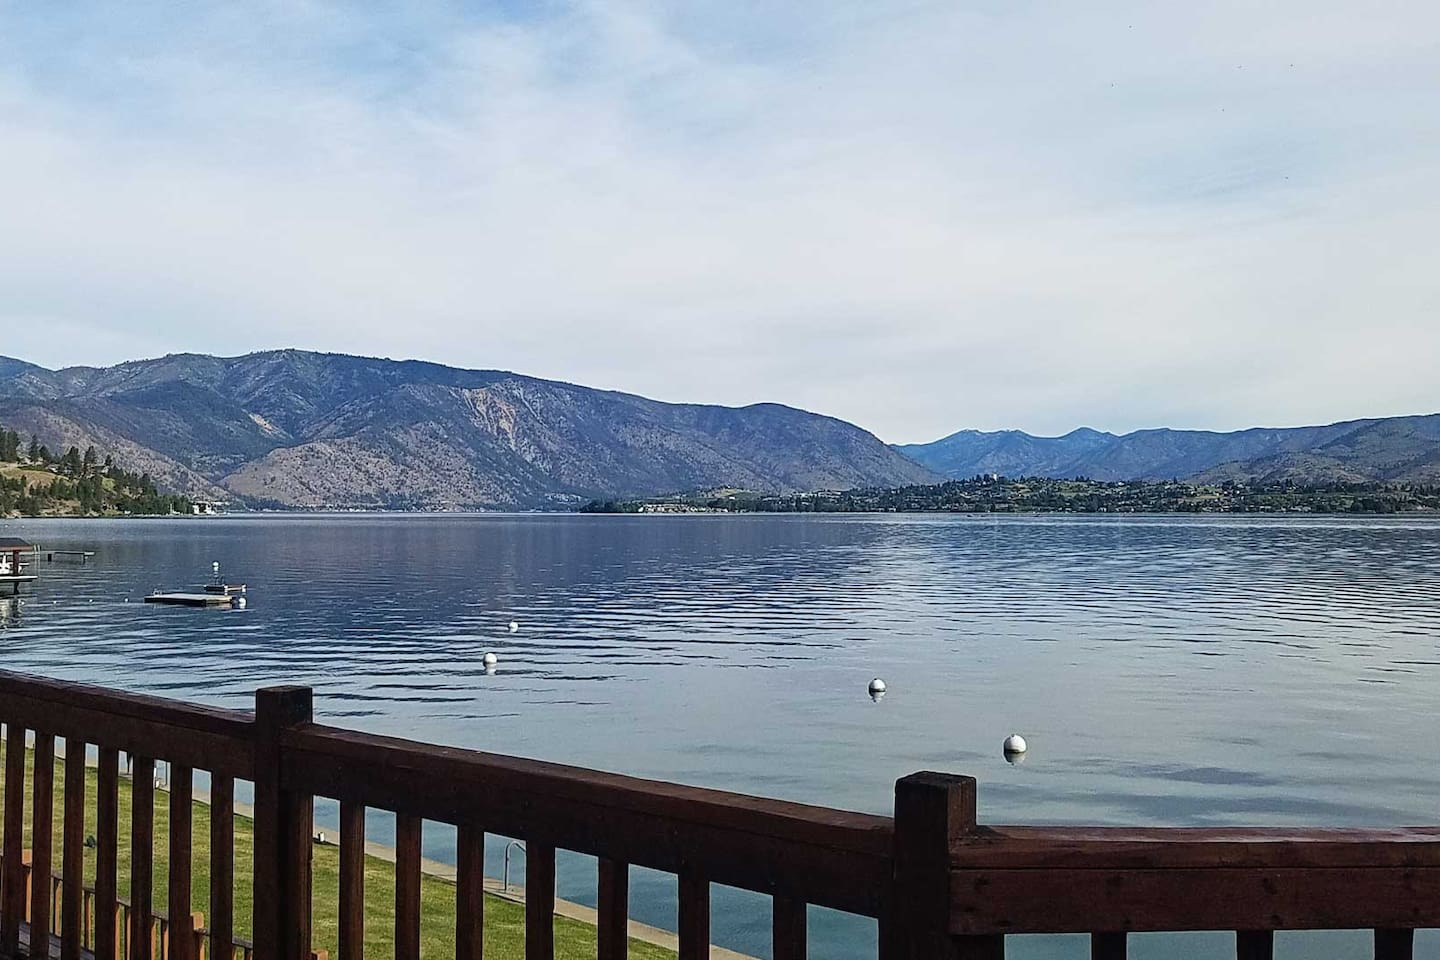 Gorgeous view from the deck of this home